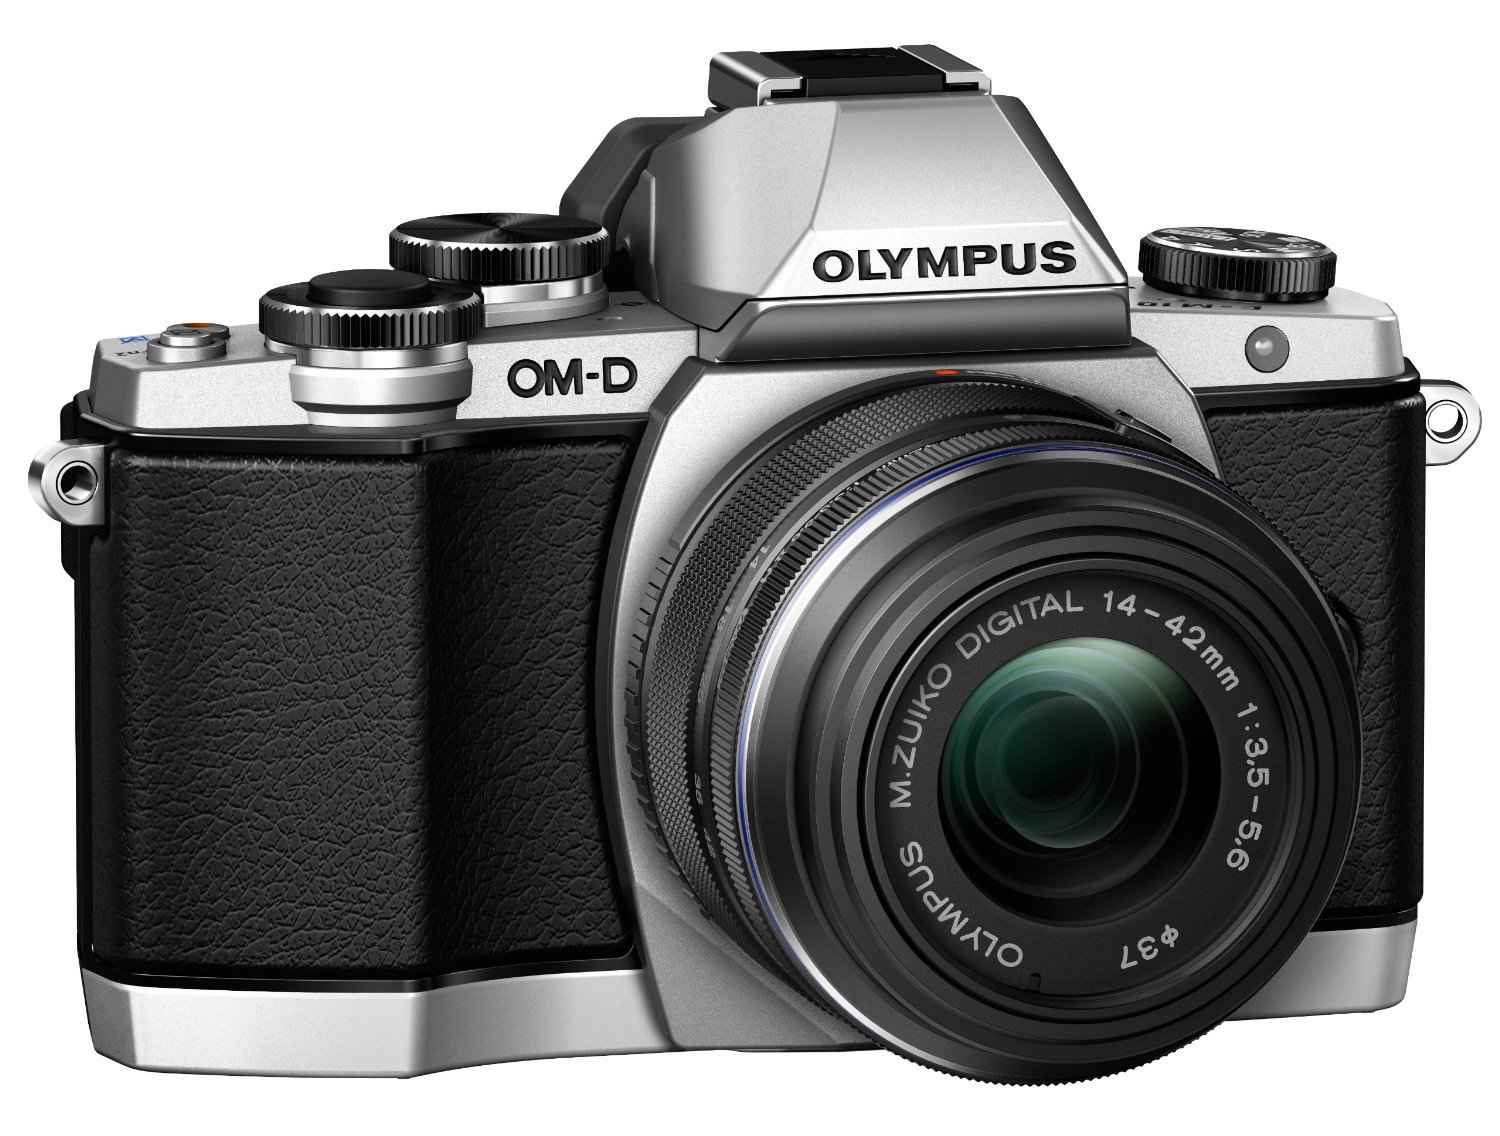 Olympus OM-D E-M10 16 MP Mirrorless Digital Camera